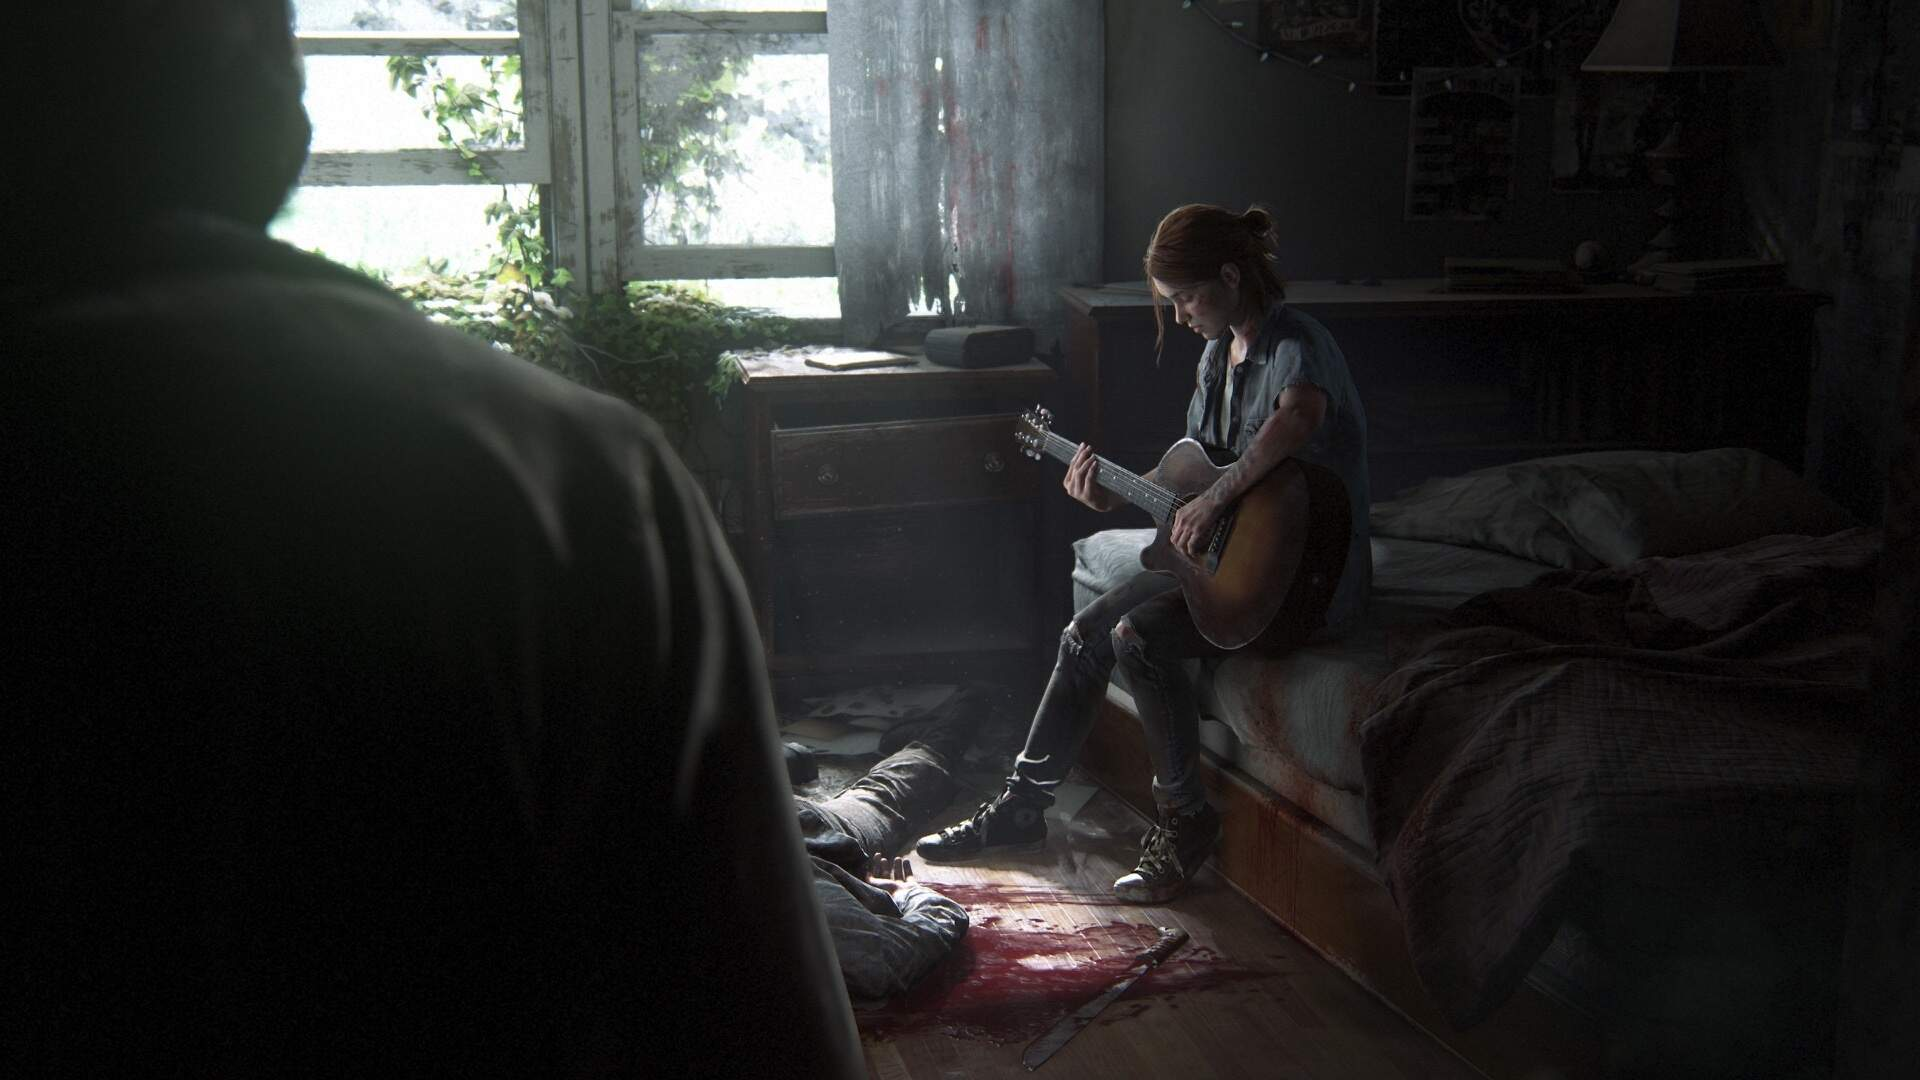 The Last of Us Part 2 Understands the Important Part That Music Can Play in the Mourning Process